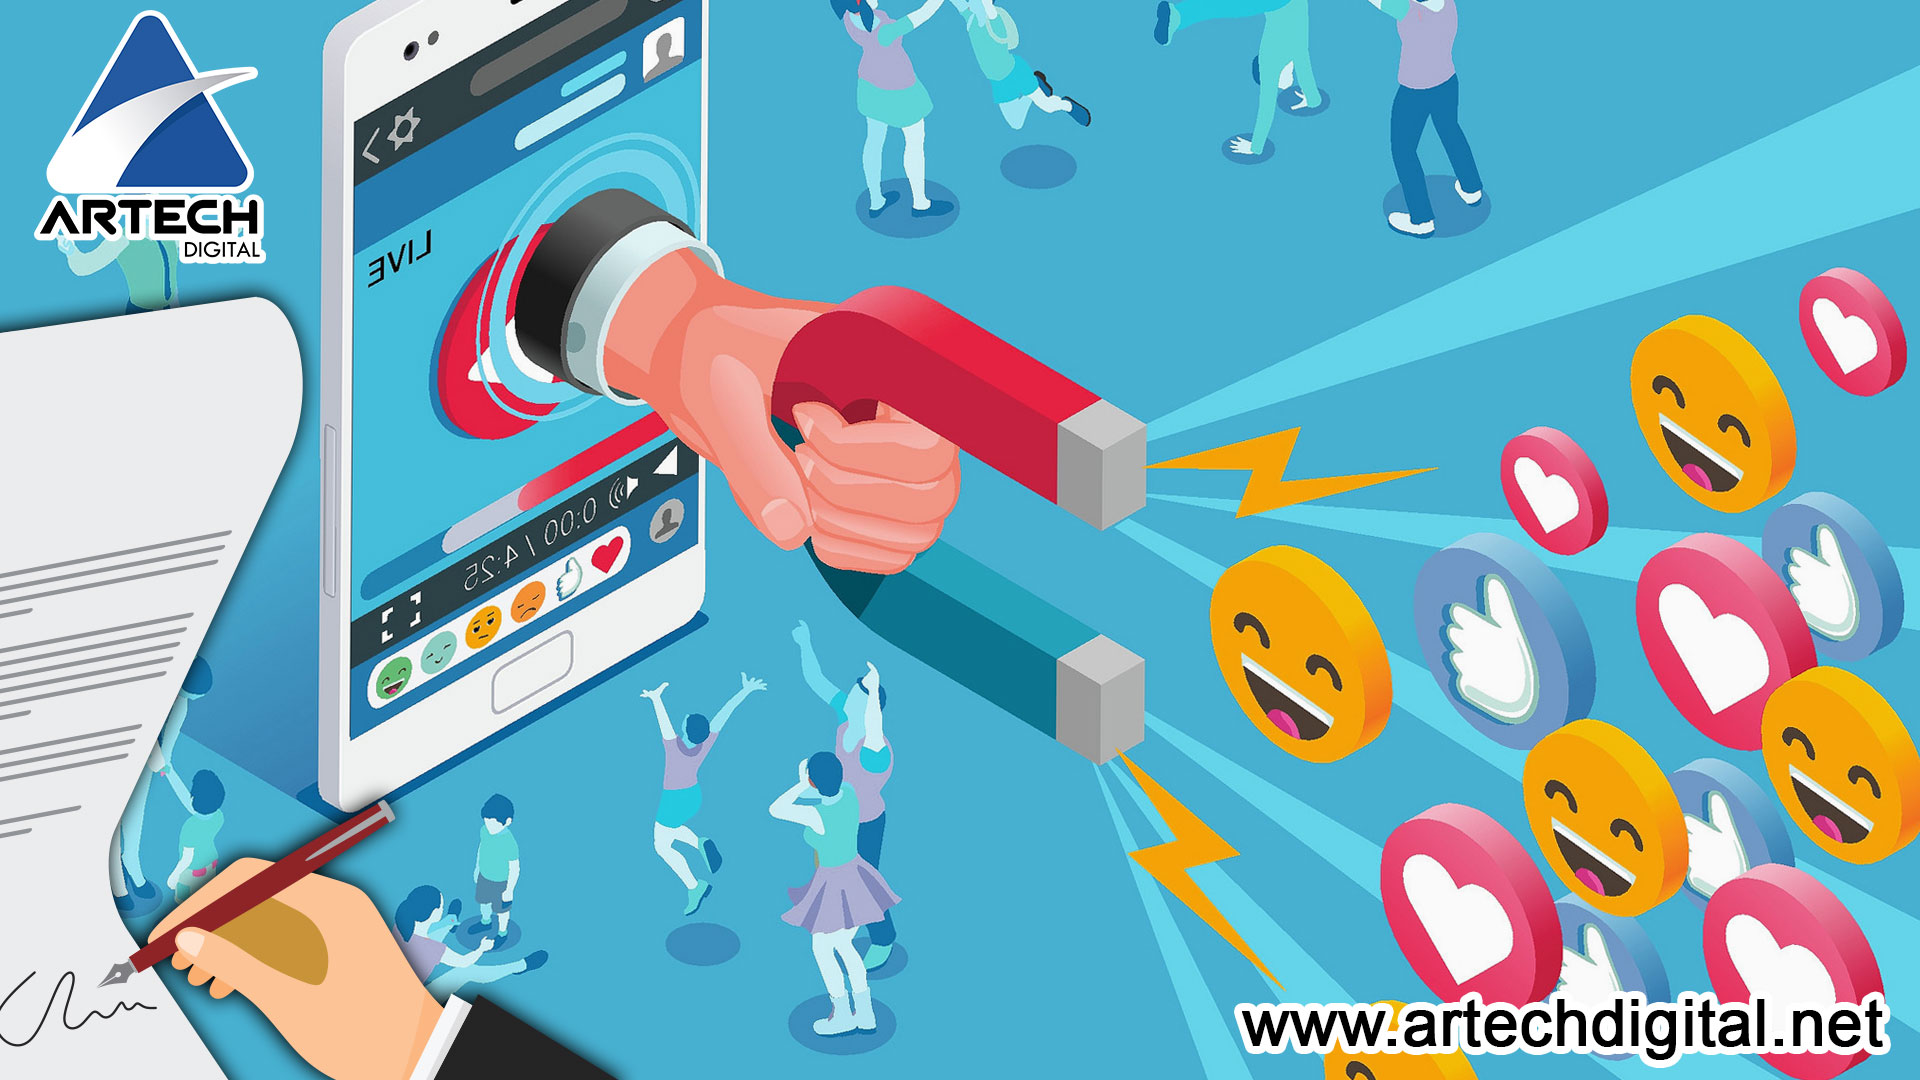 Artech Digital - Tips-influencers-marketing-campaign